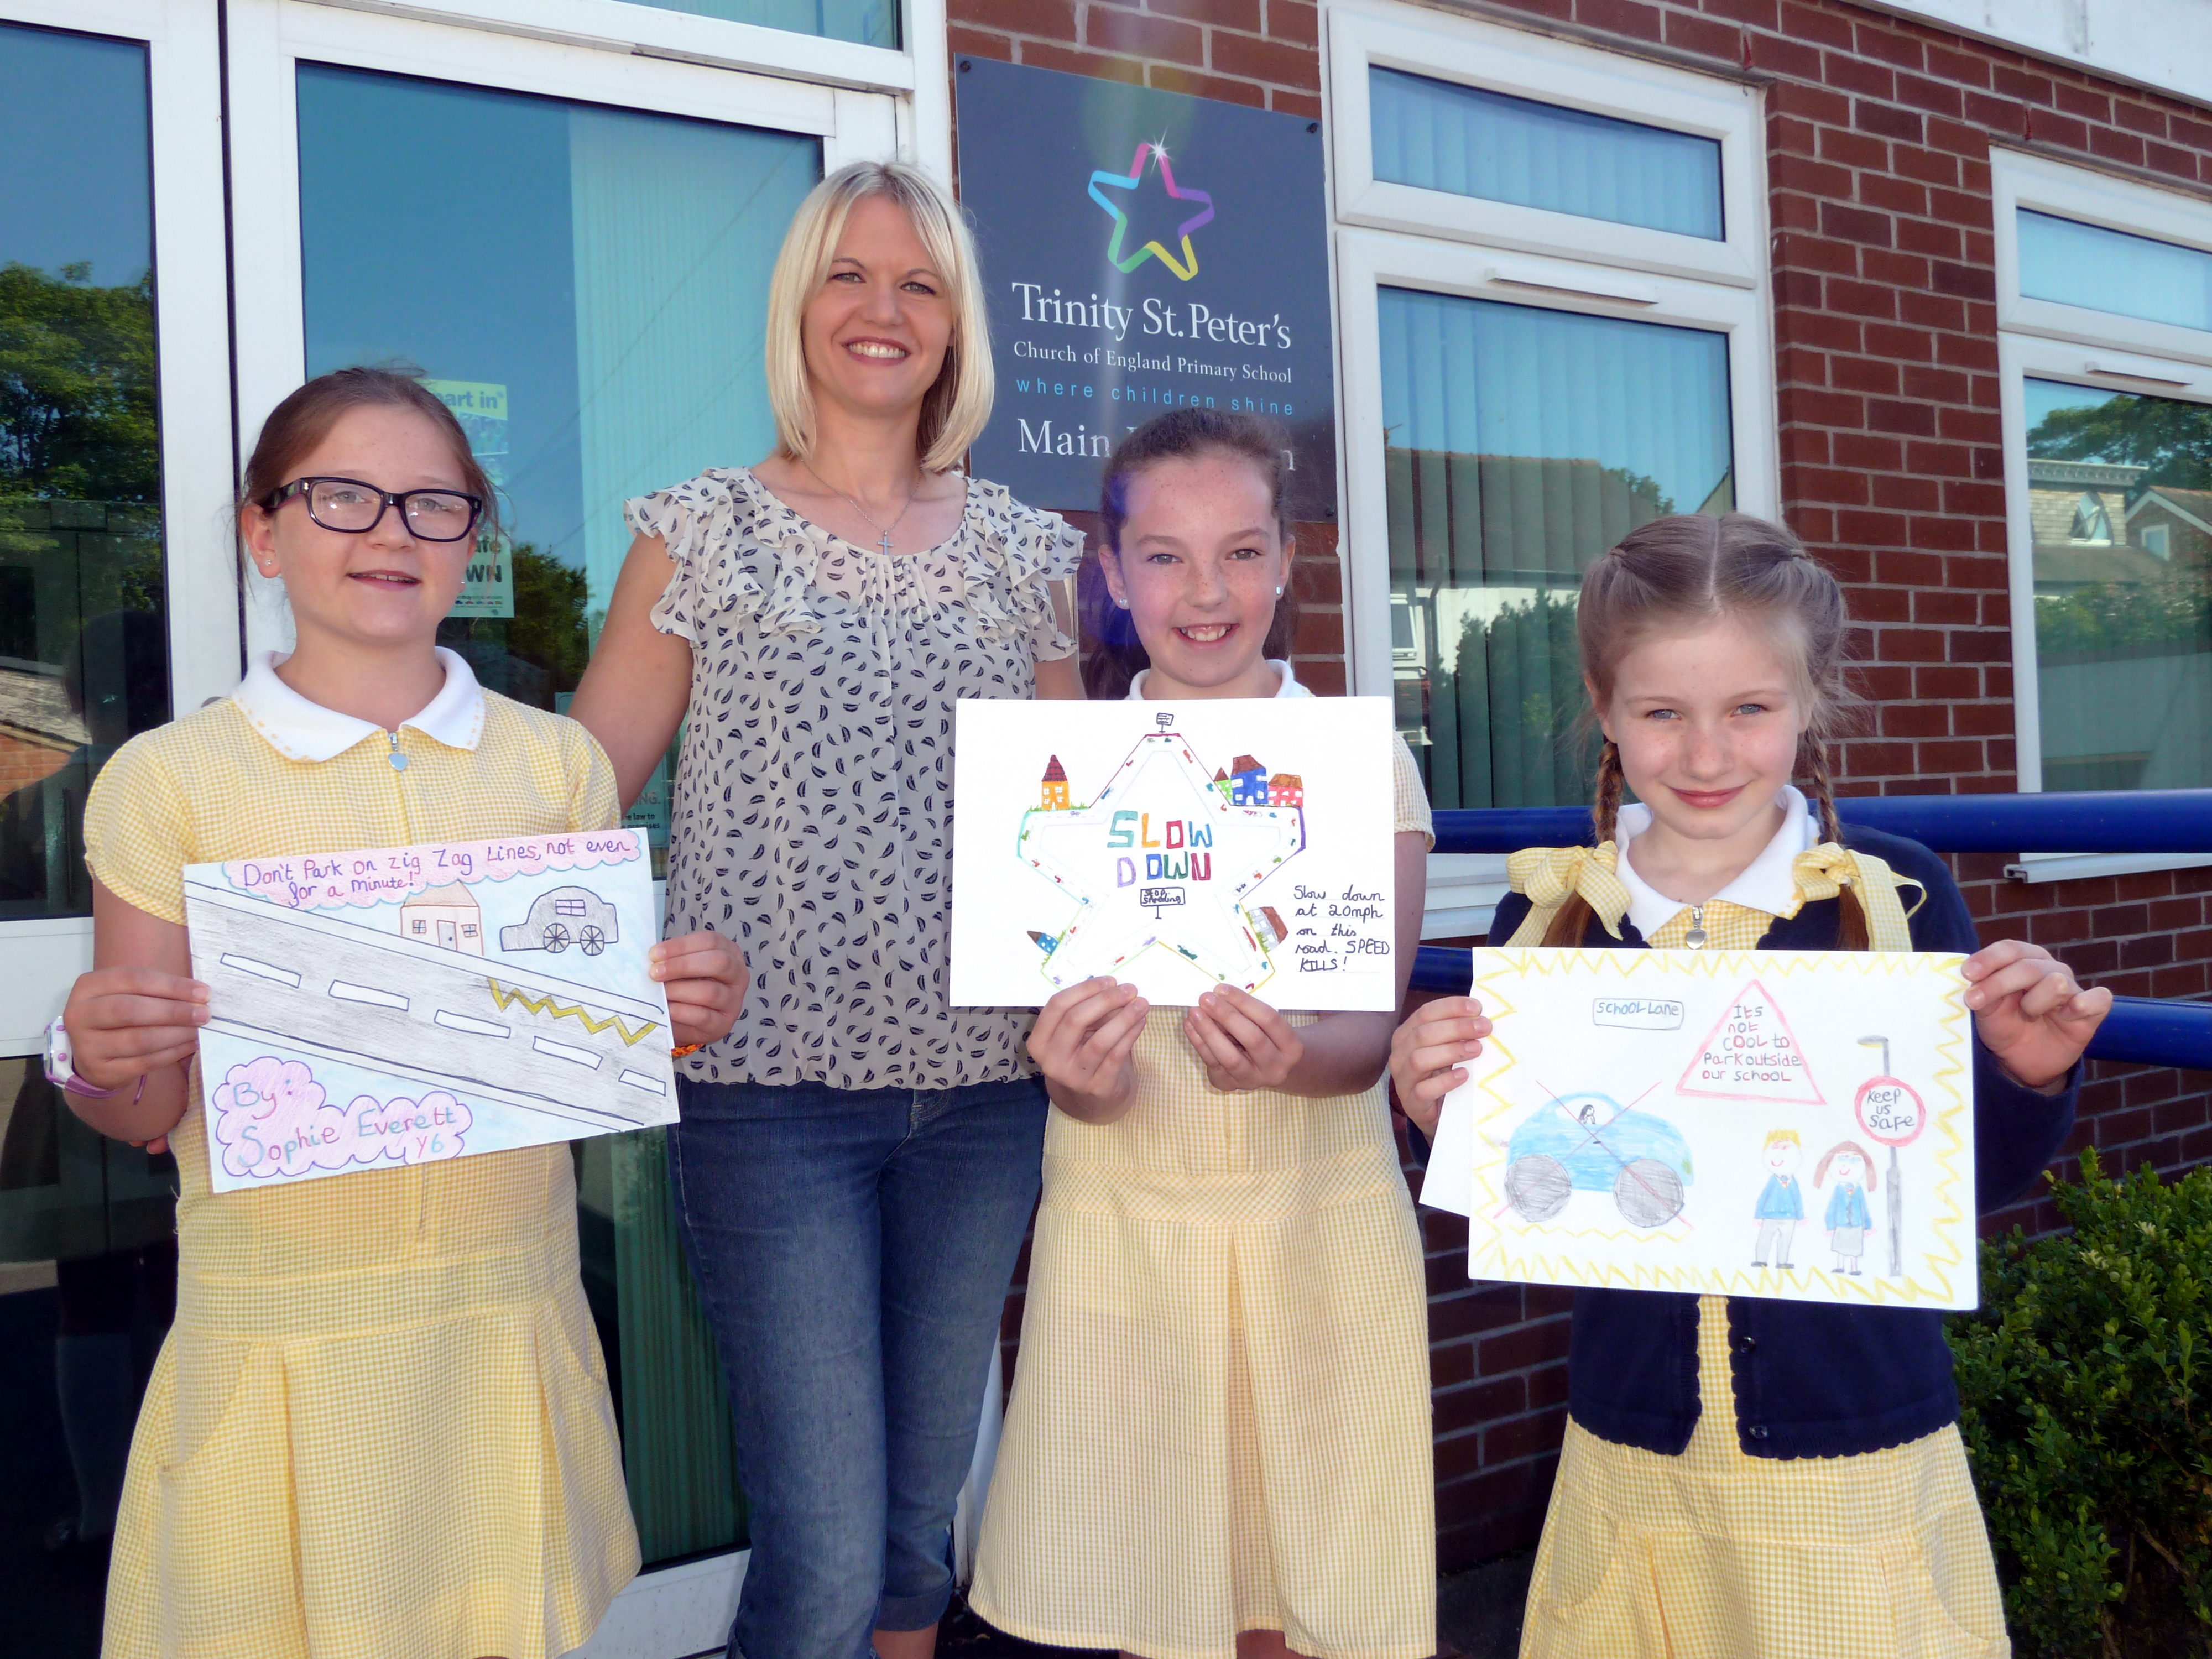 Formby Labour councillor Nina Killen with the winning Trinity St Peter's poster designers, Sophie Everett, Katie Burnett and Maisie Campbell-Myatt.